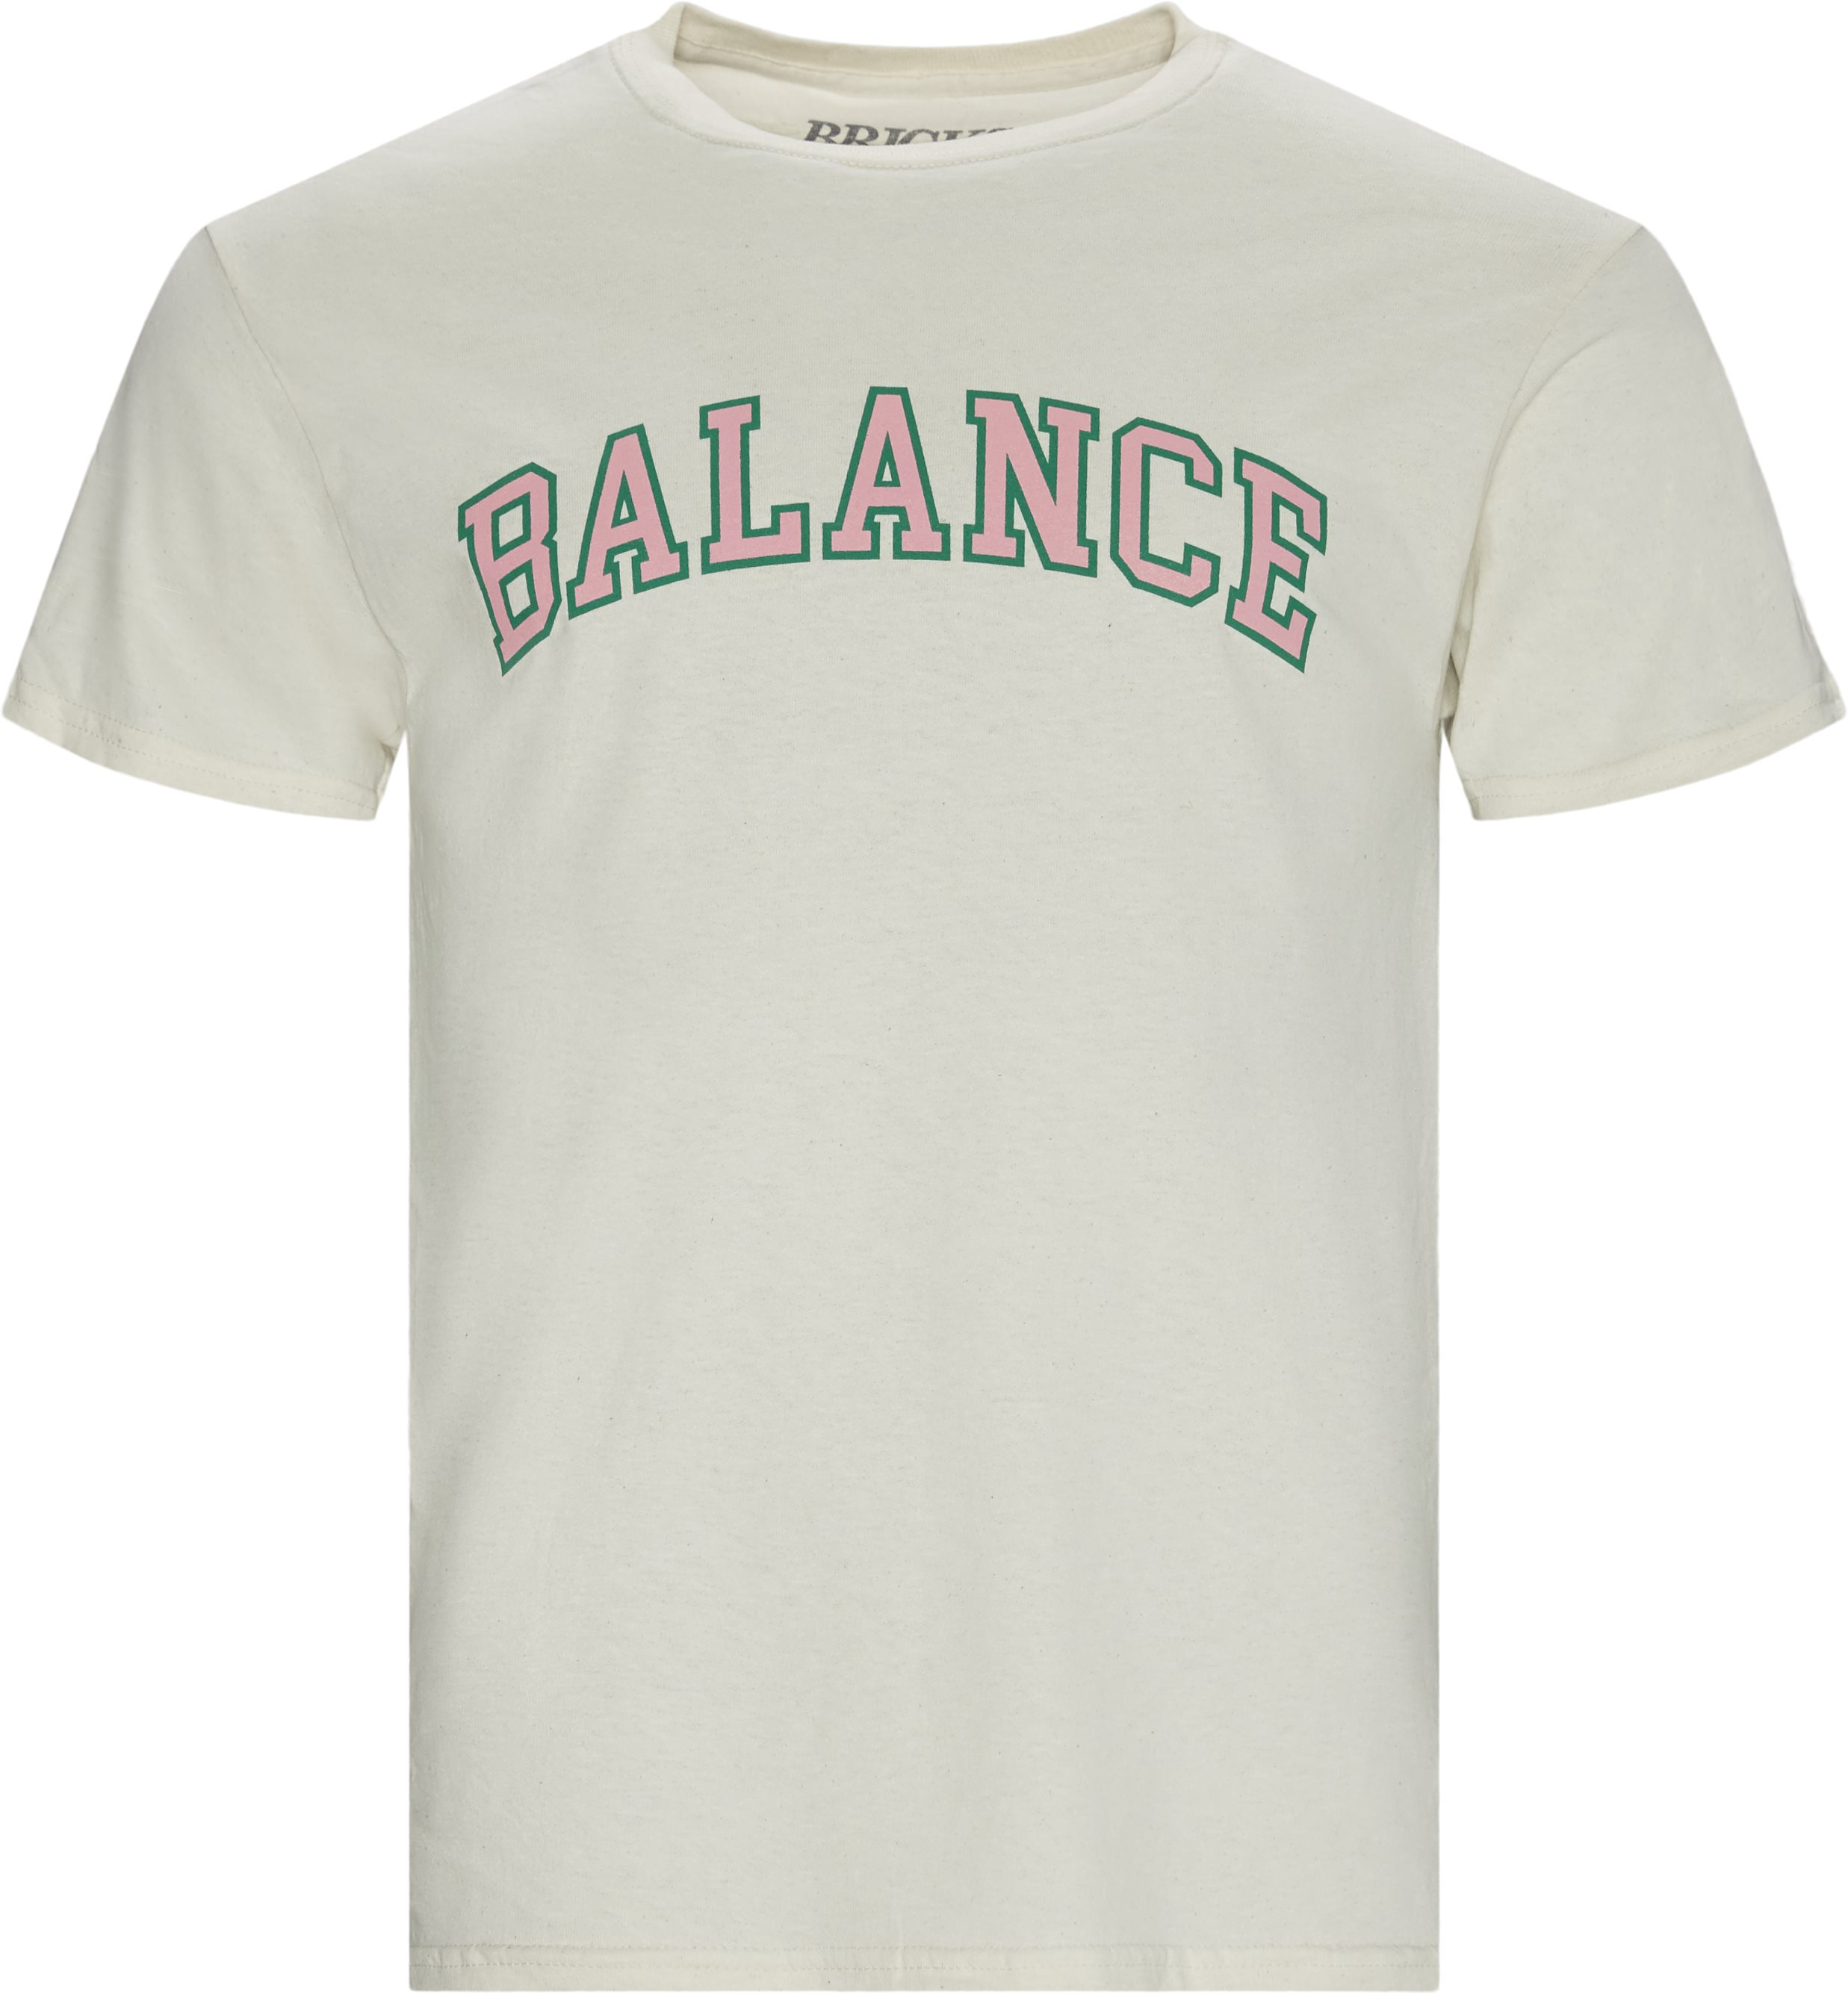 Balance Tee - T-shirts - Regular - Sand